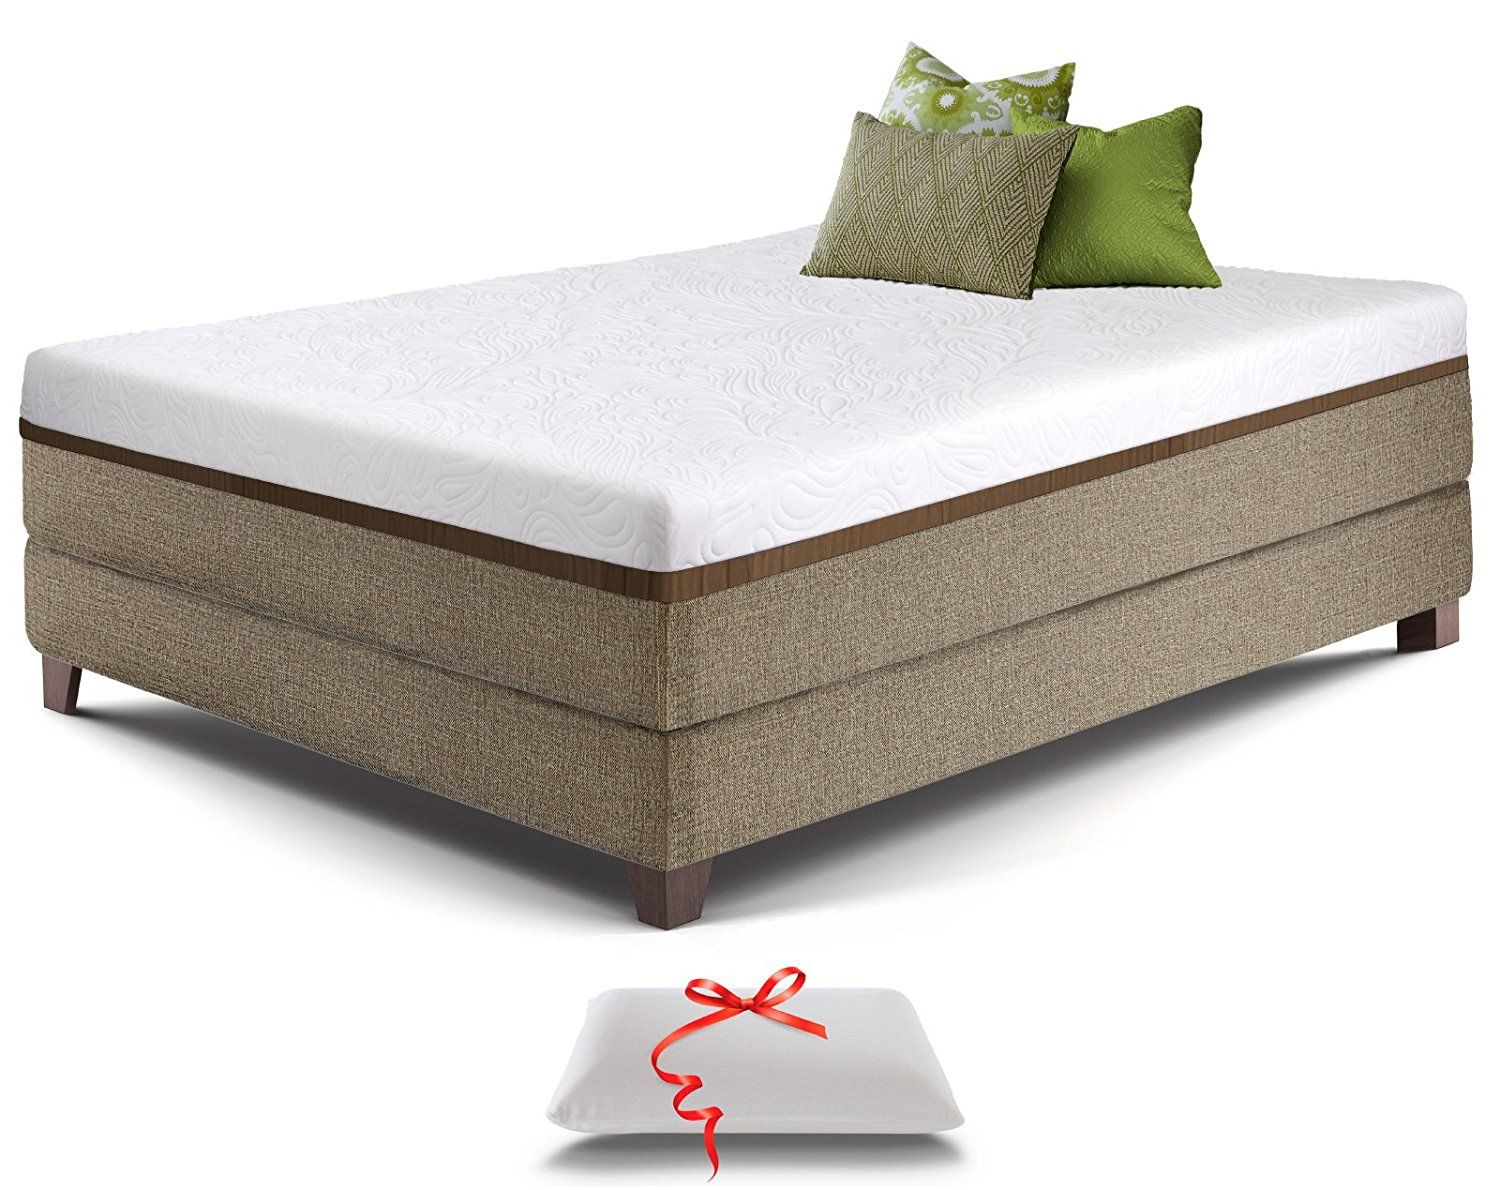 foam inch aloe knight top pin memory by christopher king gel size mattress pillow